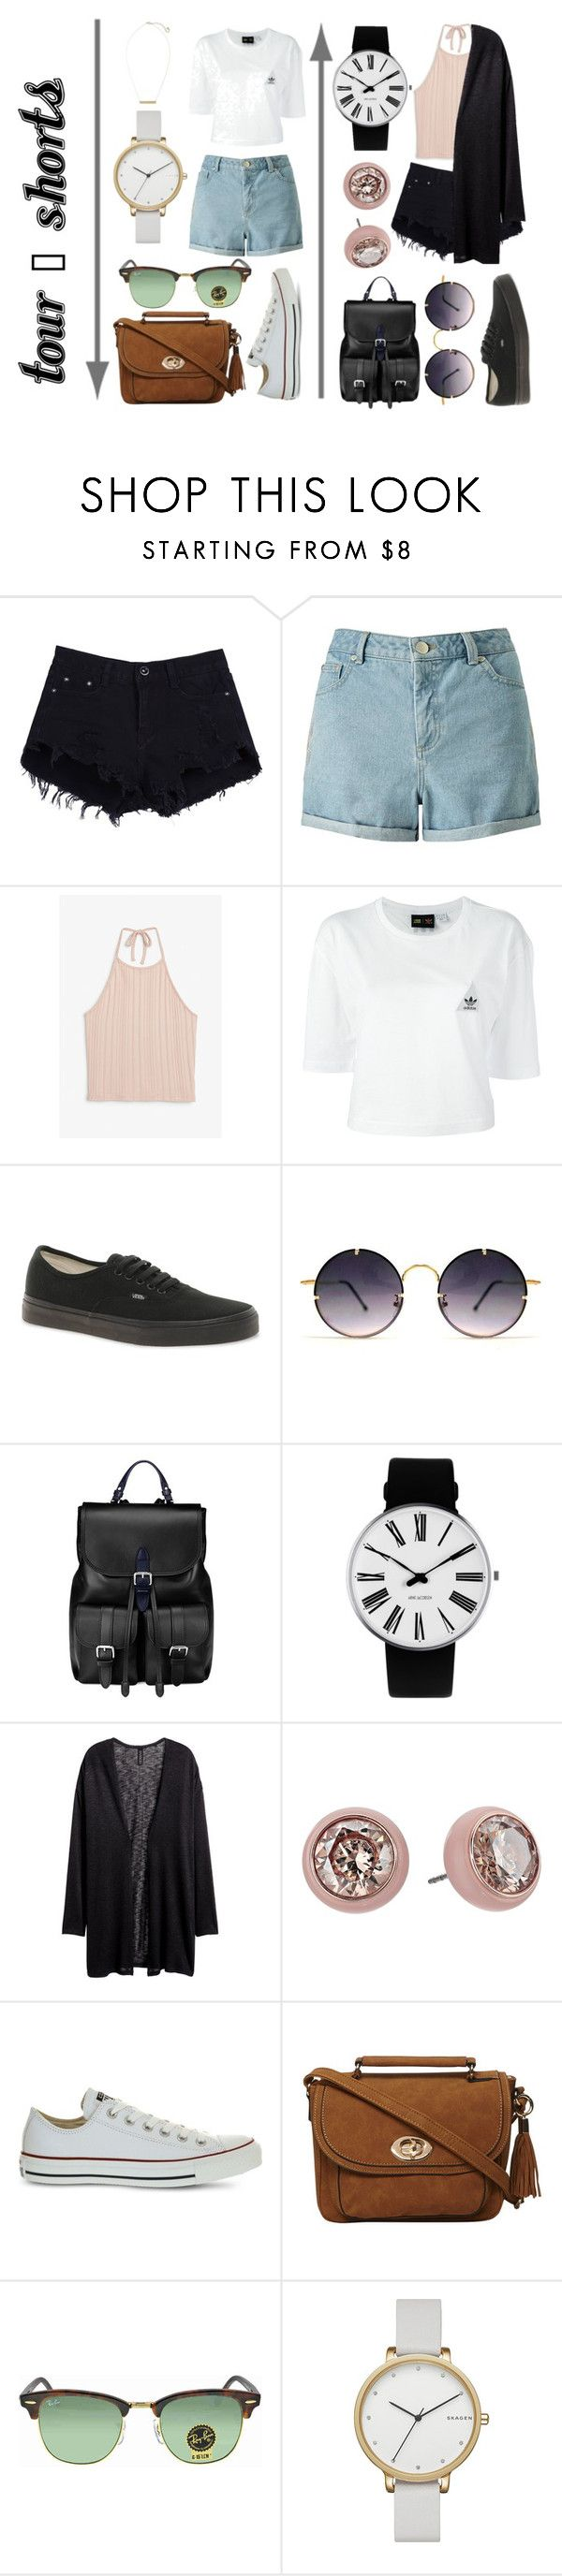 """""""TOUR - Shorts"""" by lilyrose2000 on Polyvore featuring Miss Selfridge, Monki, adidas, Vans, Spitfire, Aspinal of London, Rosendahl, H&M, Michael Kors and Converse"""